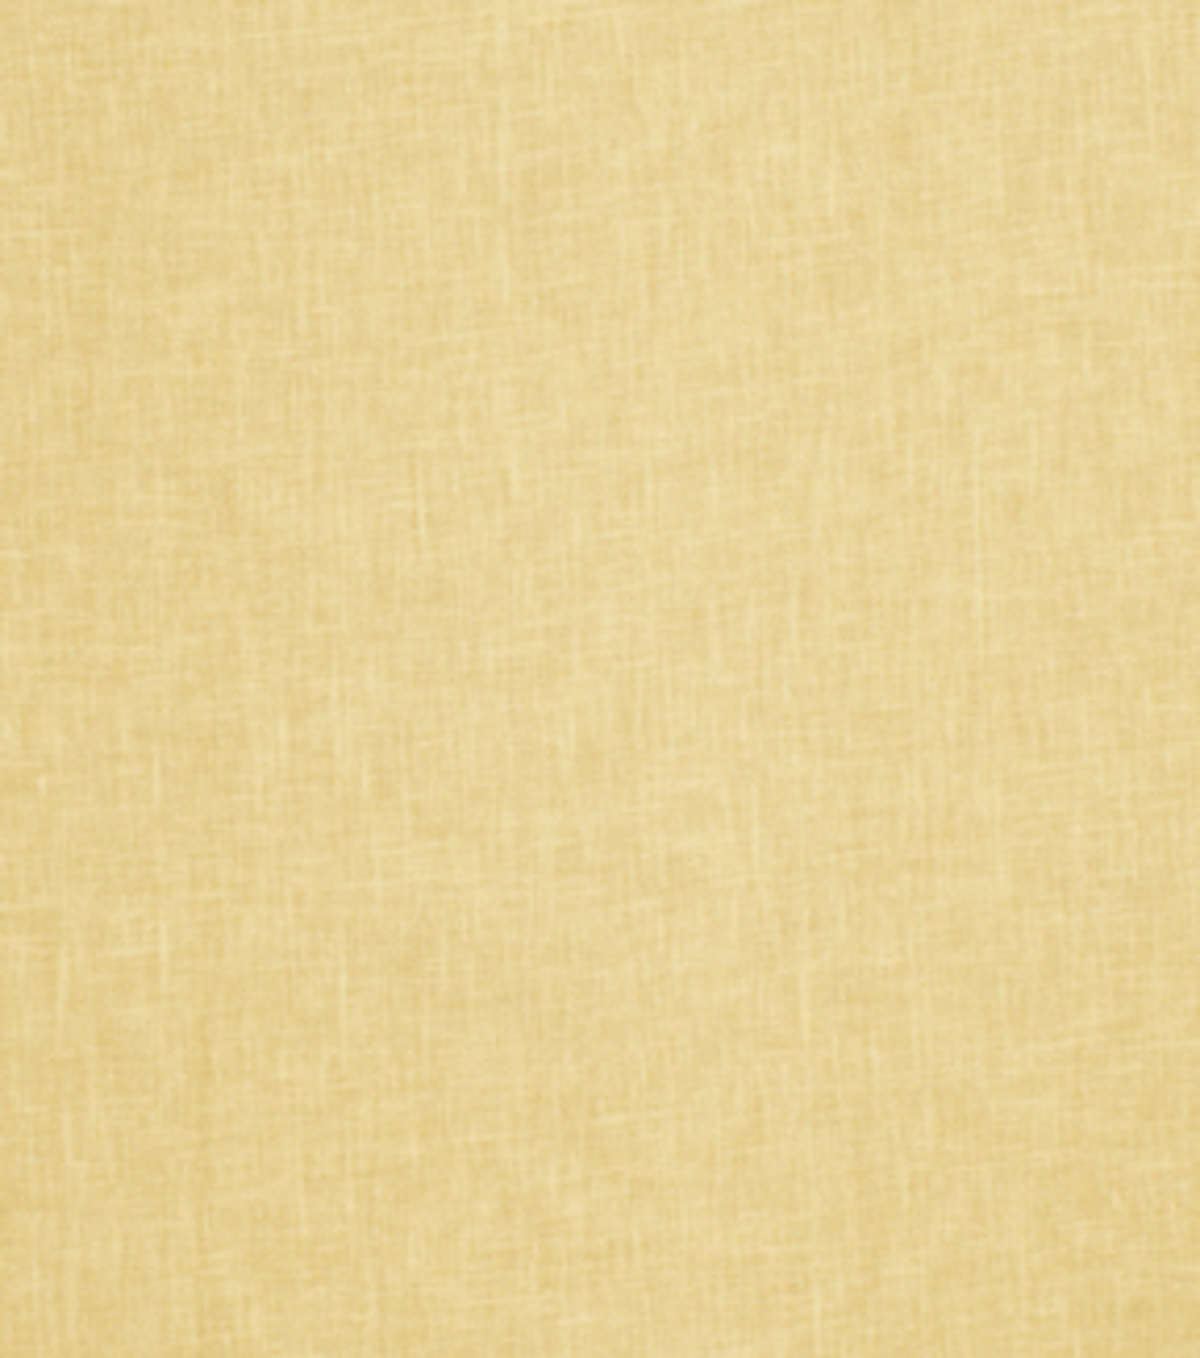 Home Decor 8\u0022x8\u0022 Fabric Swatch-Eaton Square Bannister Butter